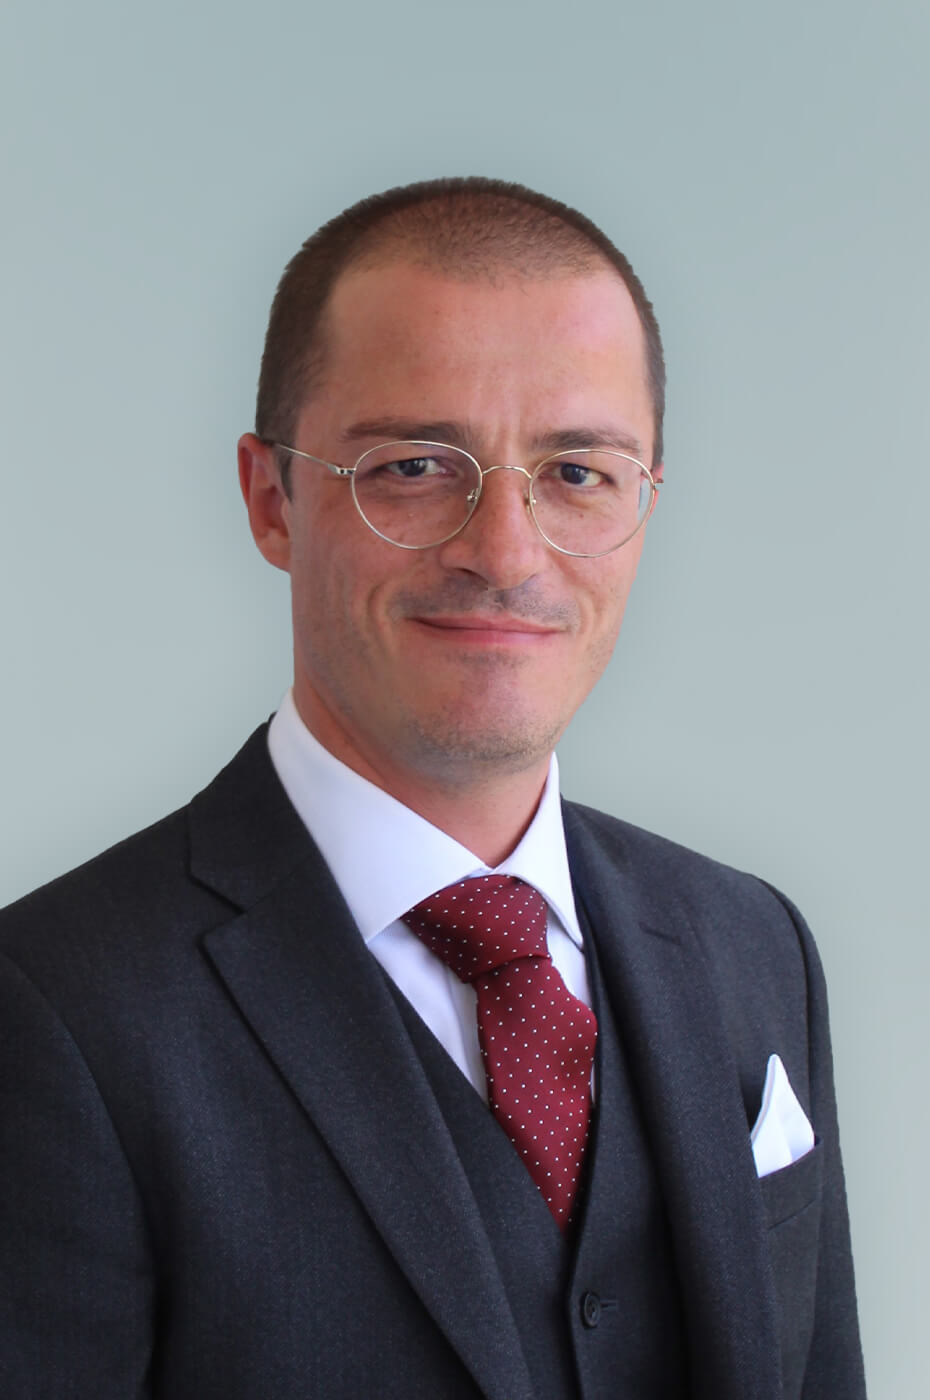 Andrea Maria Vittorio Venturini : Board Member of Abalone Services and COO of Abalone Asset Management,